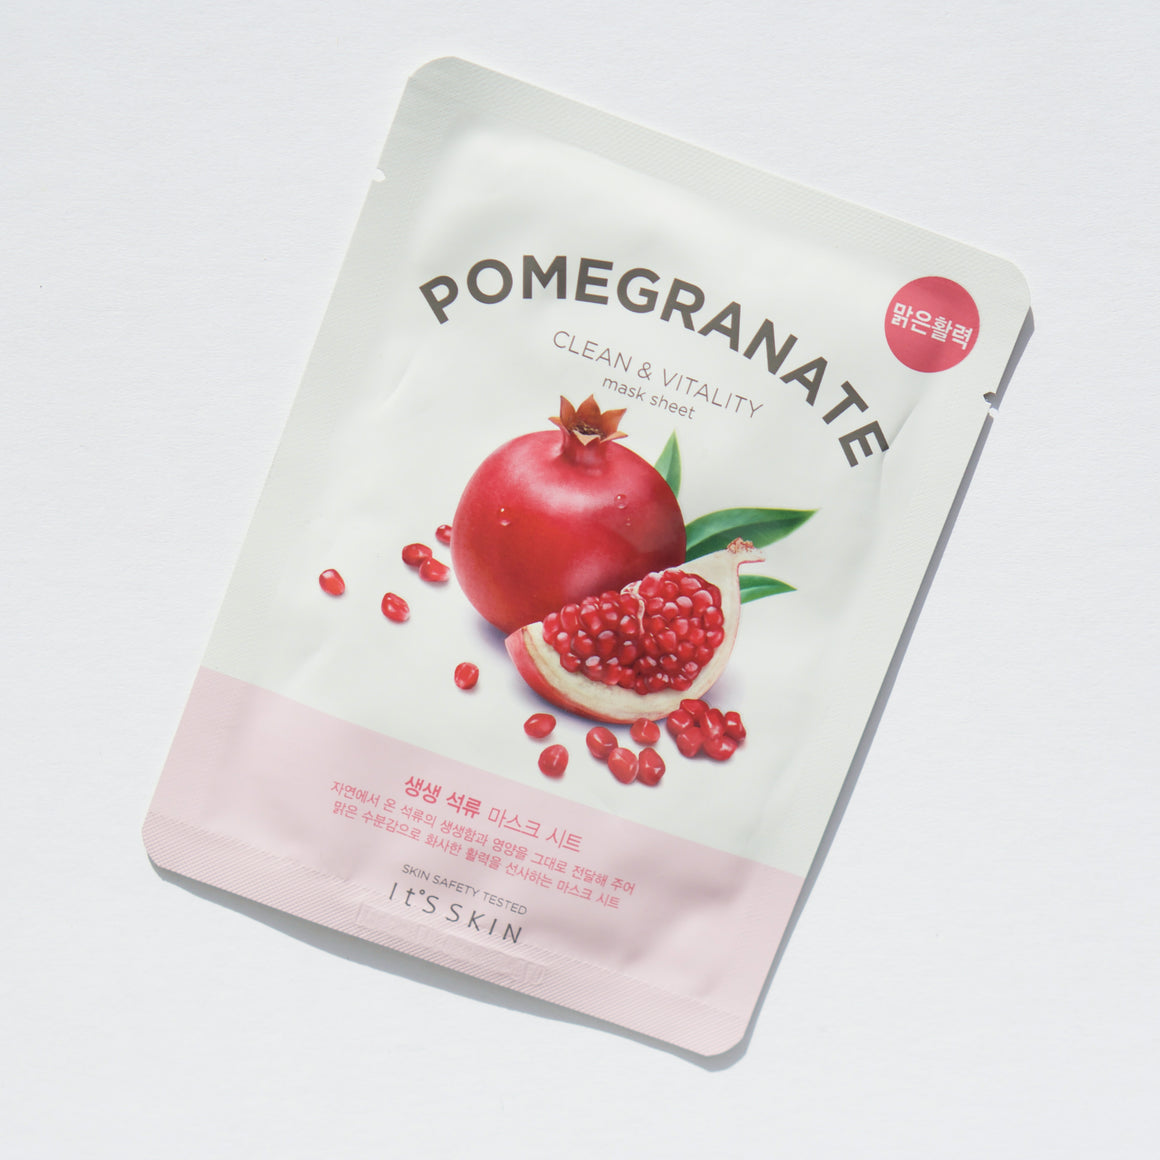 It'S SKIN The Fresh Mask - Pomegranate